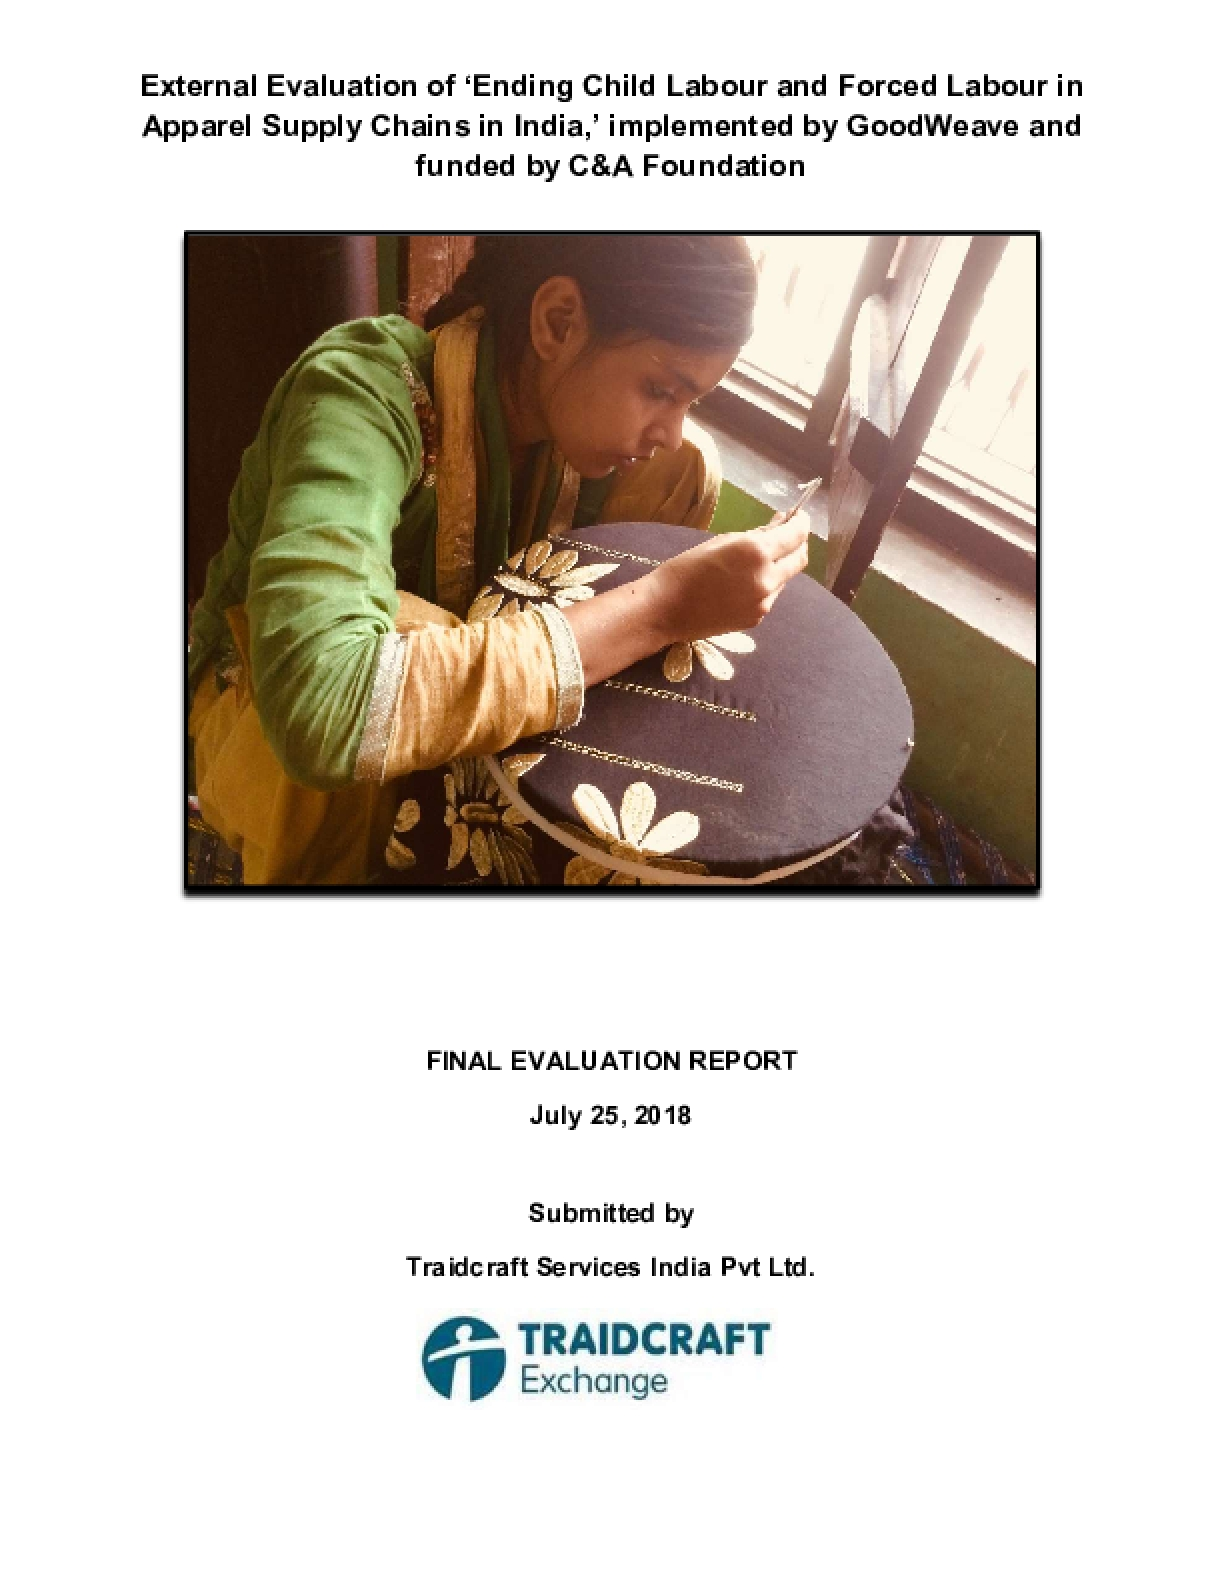 External Evaluation of 'Ending Child Labour and Forced Labour in Apparel Supply Chains in India,' implemented by GoodWeave and funded by C&A Foundation